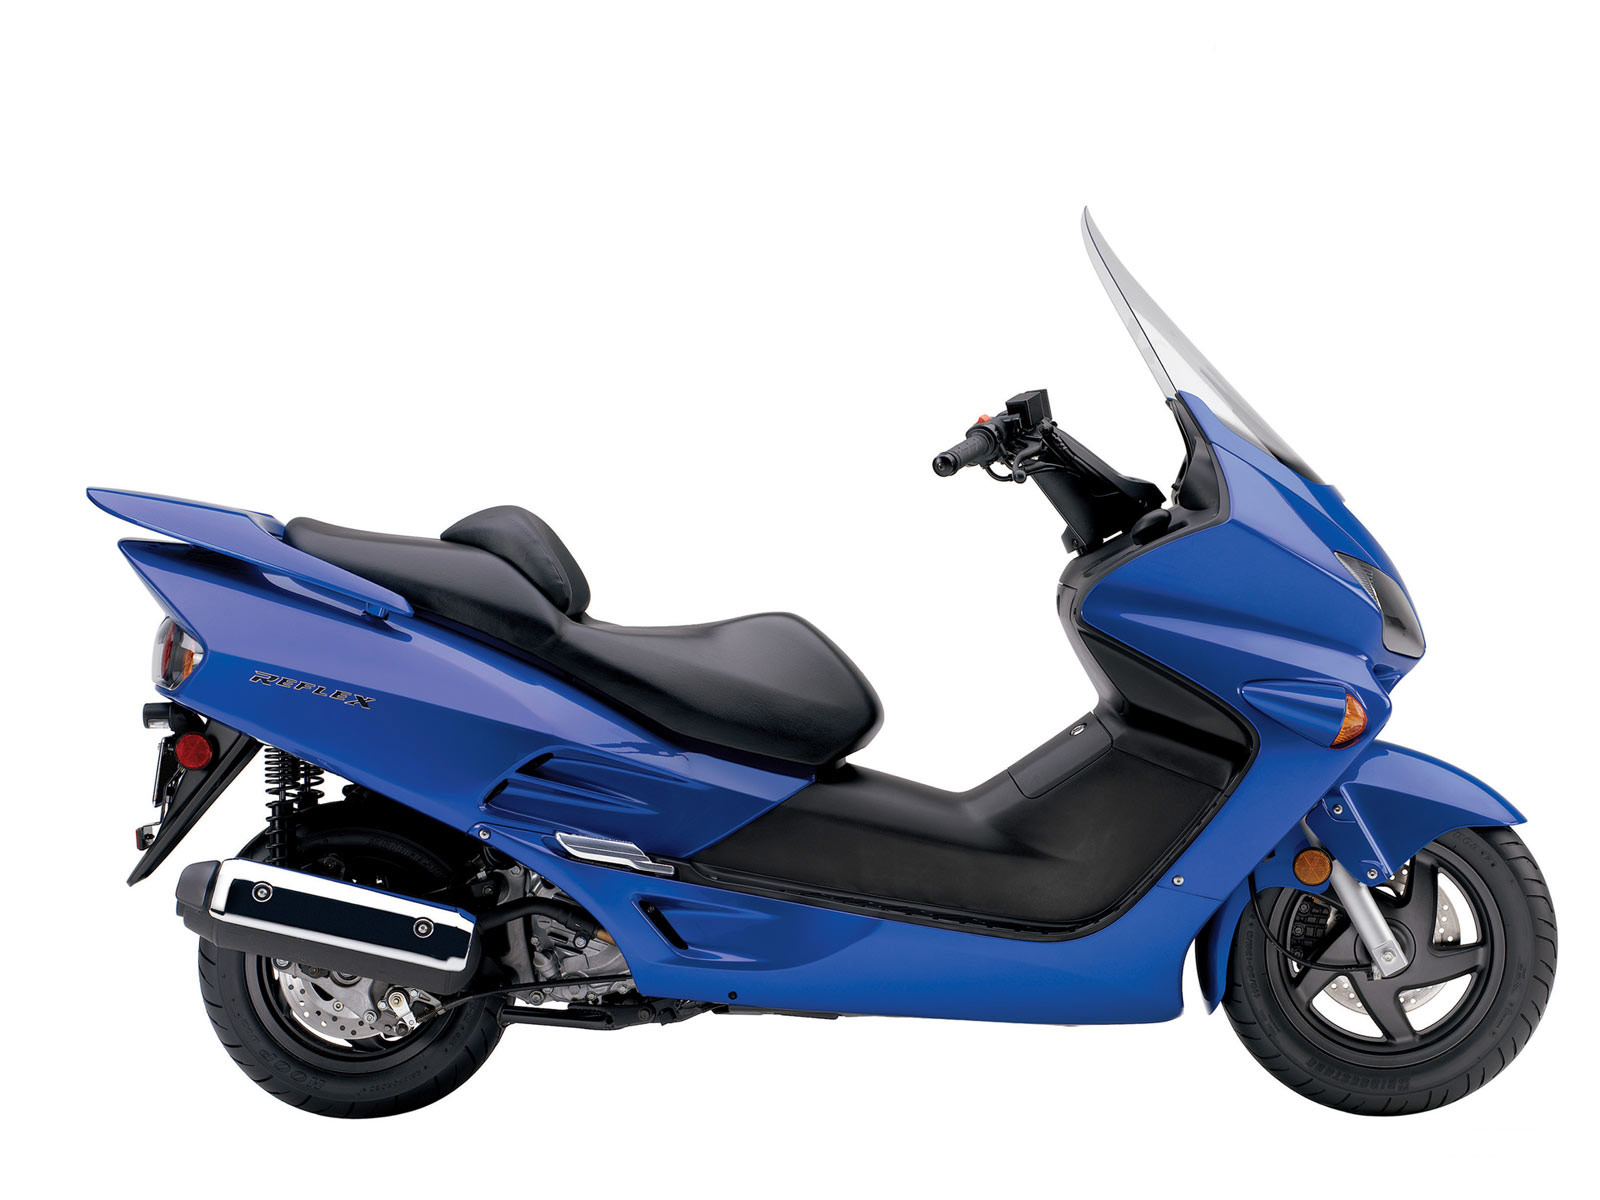 Honda Reflex Scooter Pictures